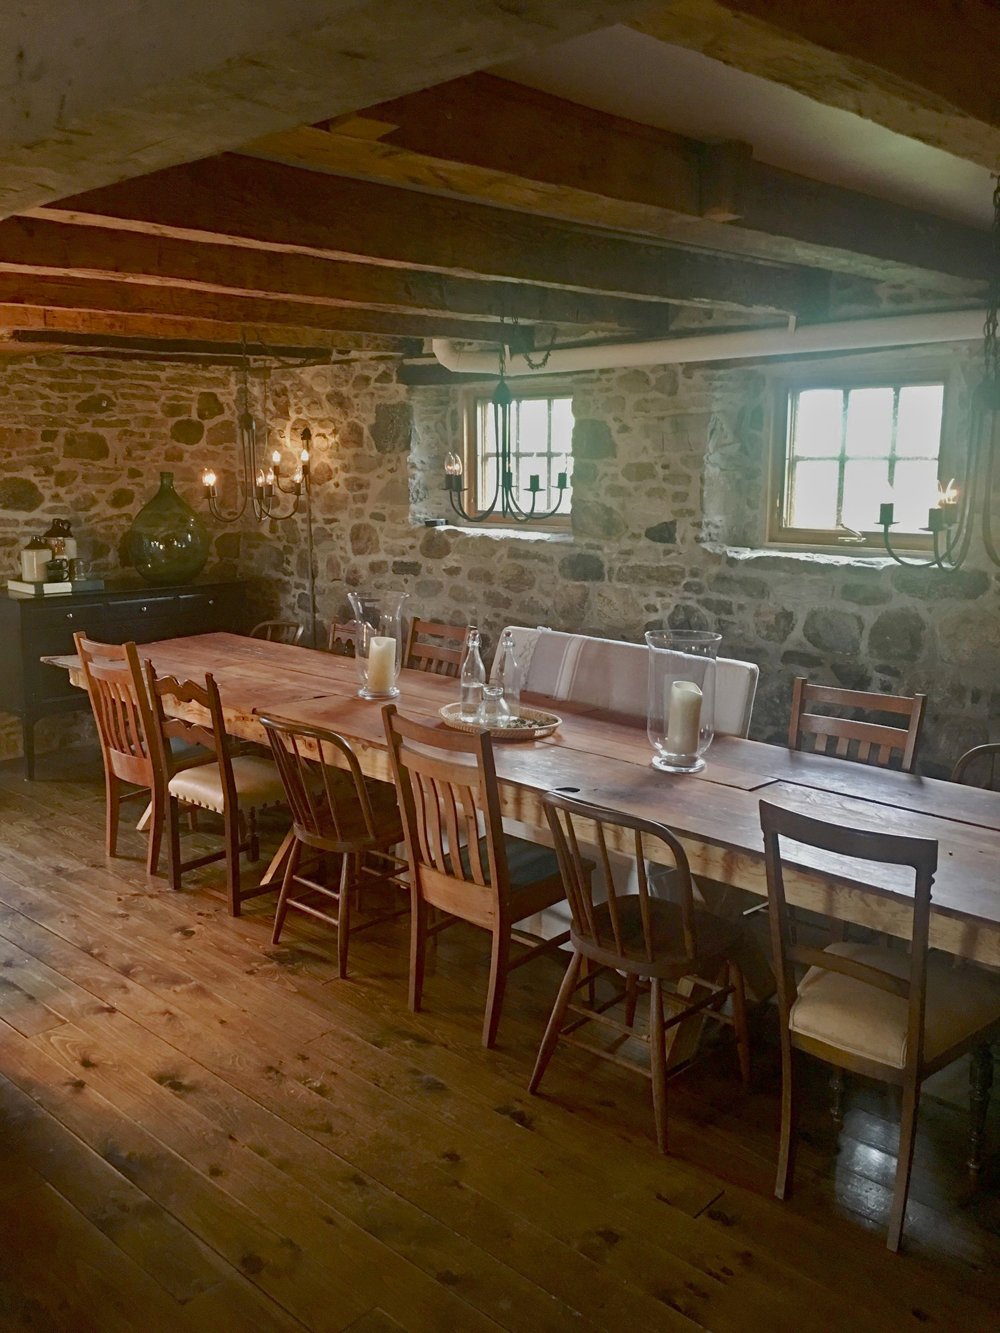 Dining room in a low-ceiling old stone house.